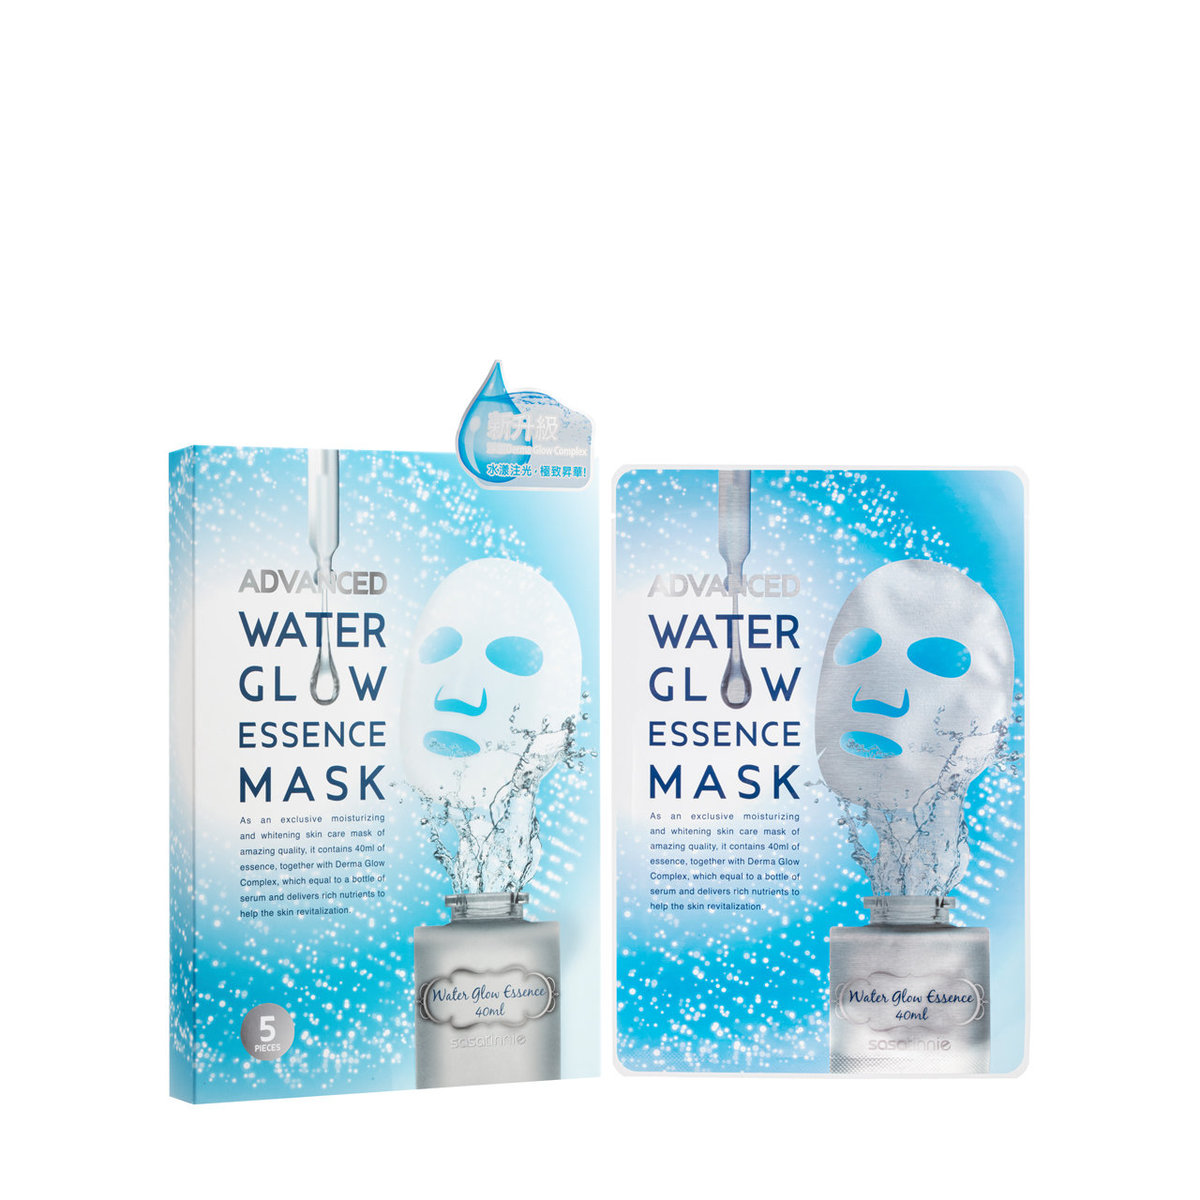 Advanced Water Glow Essence Mask